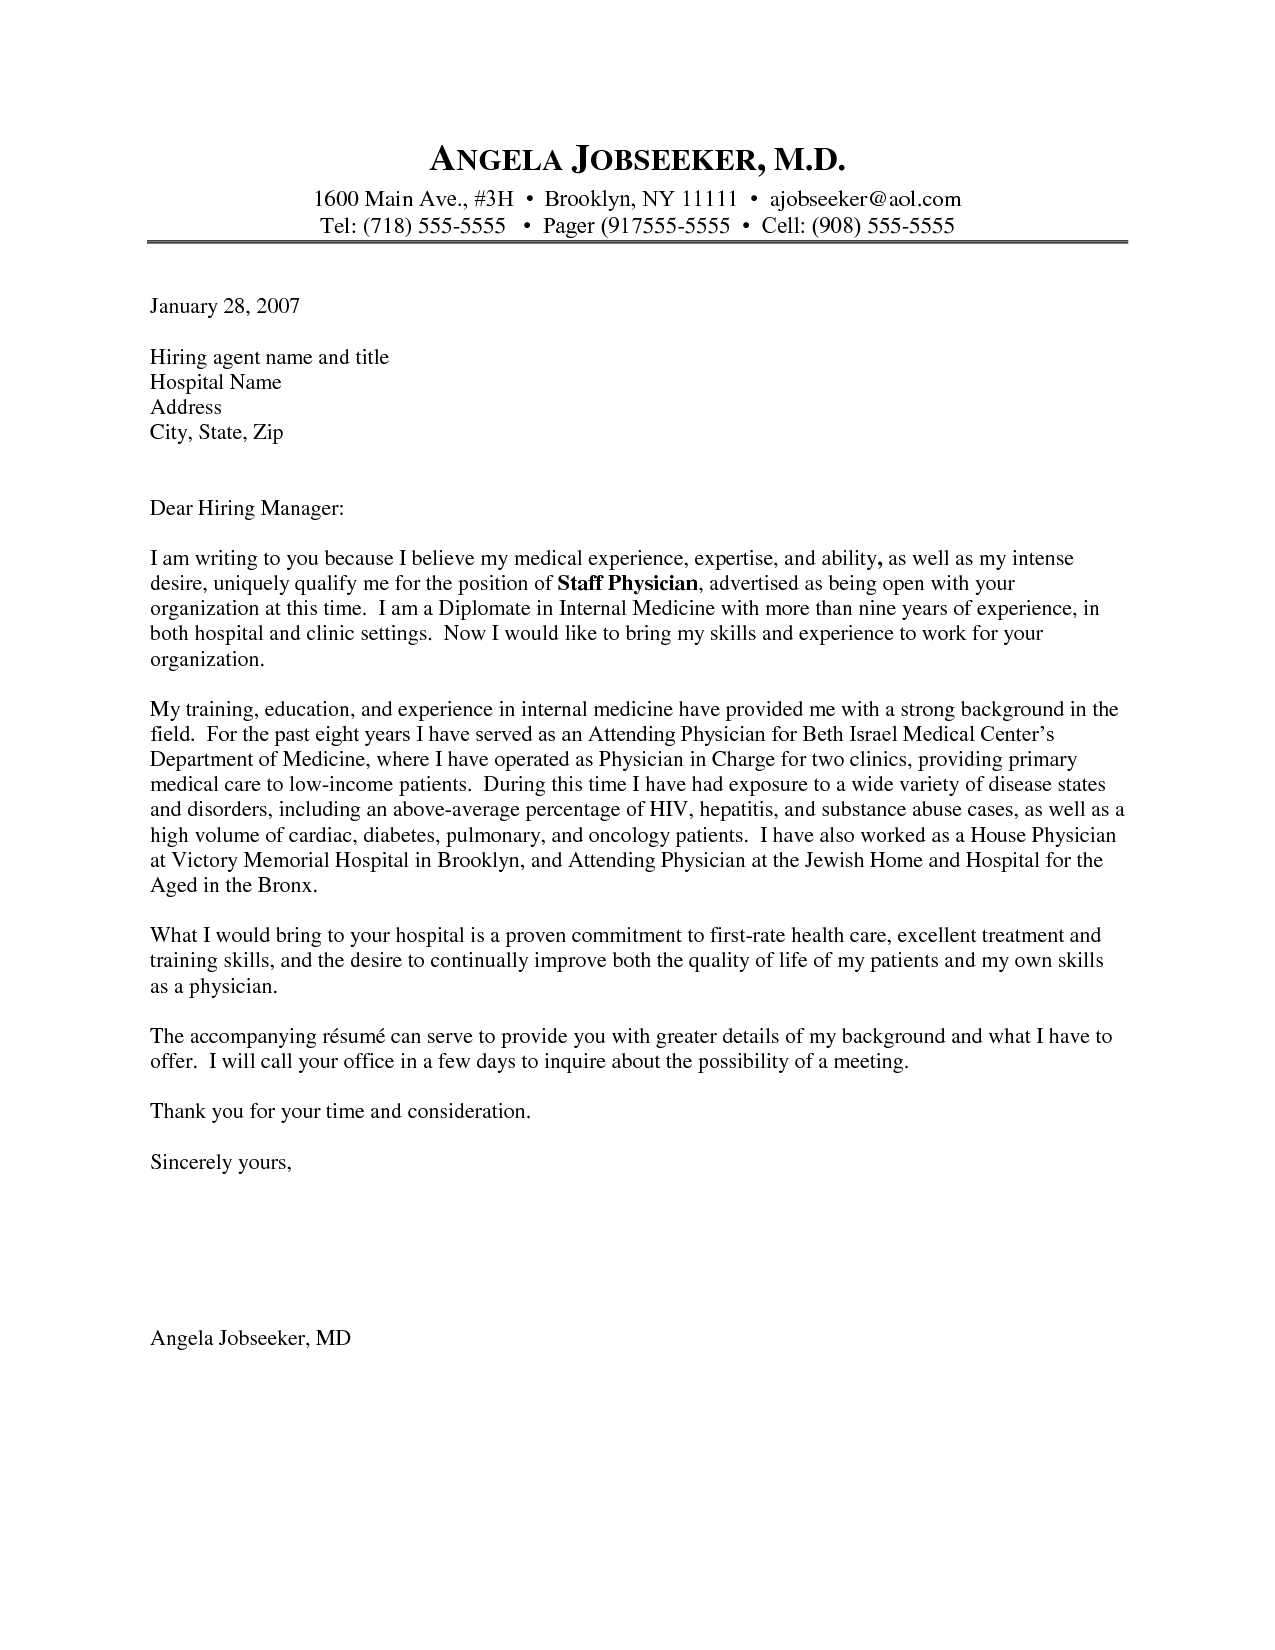 examples of medical coverletters doctor cover letter example - Doctor Cover Letter